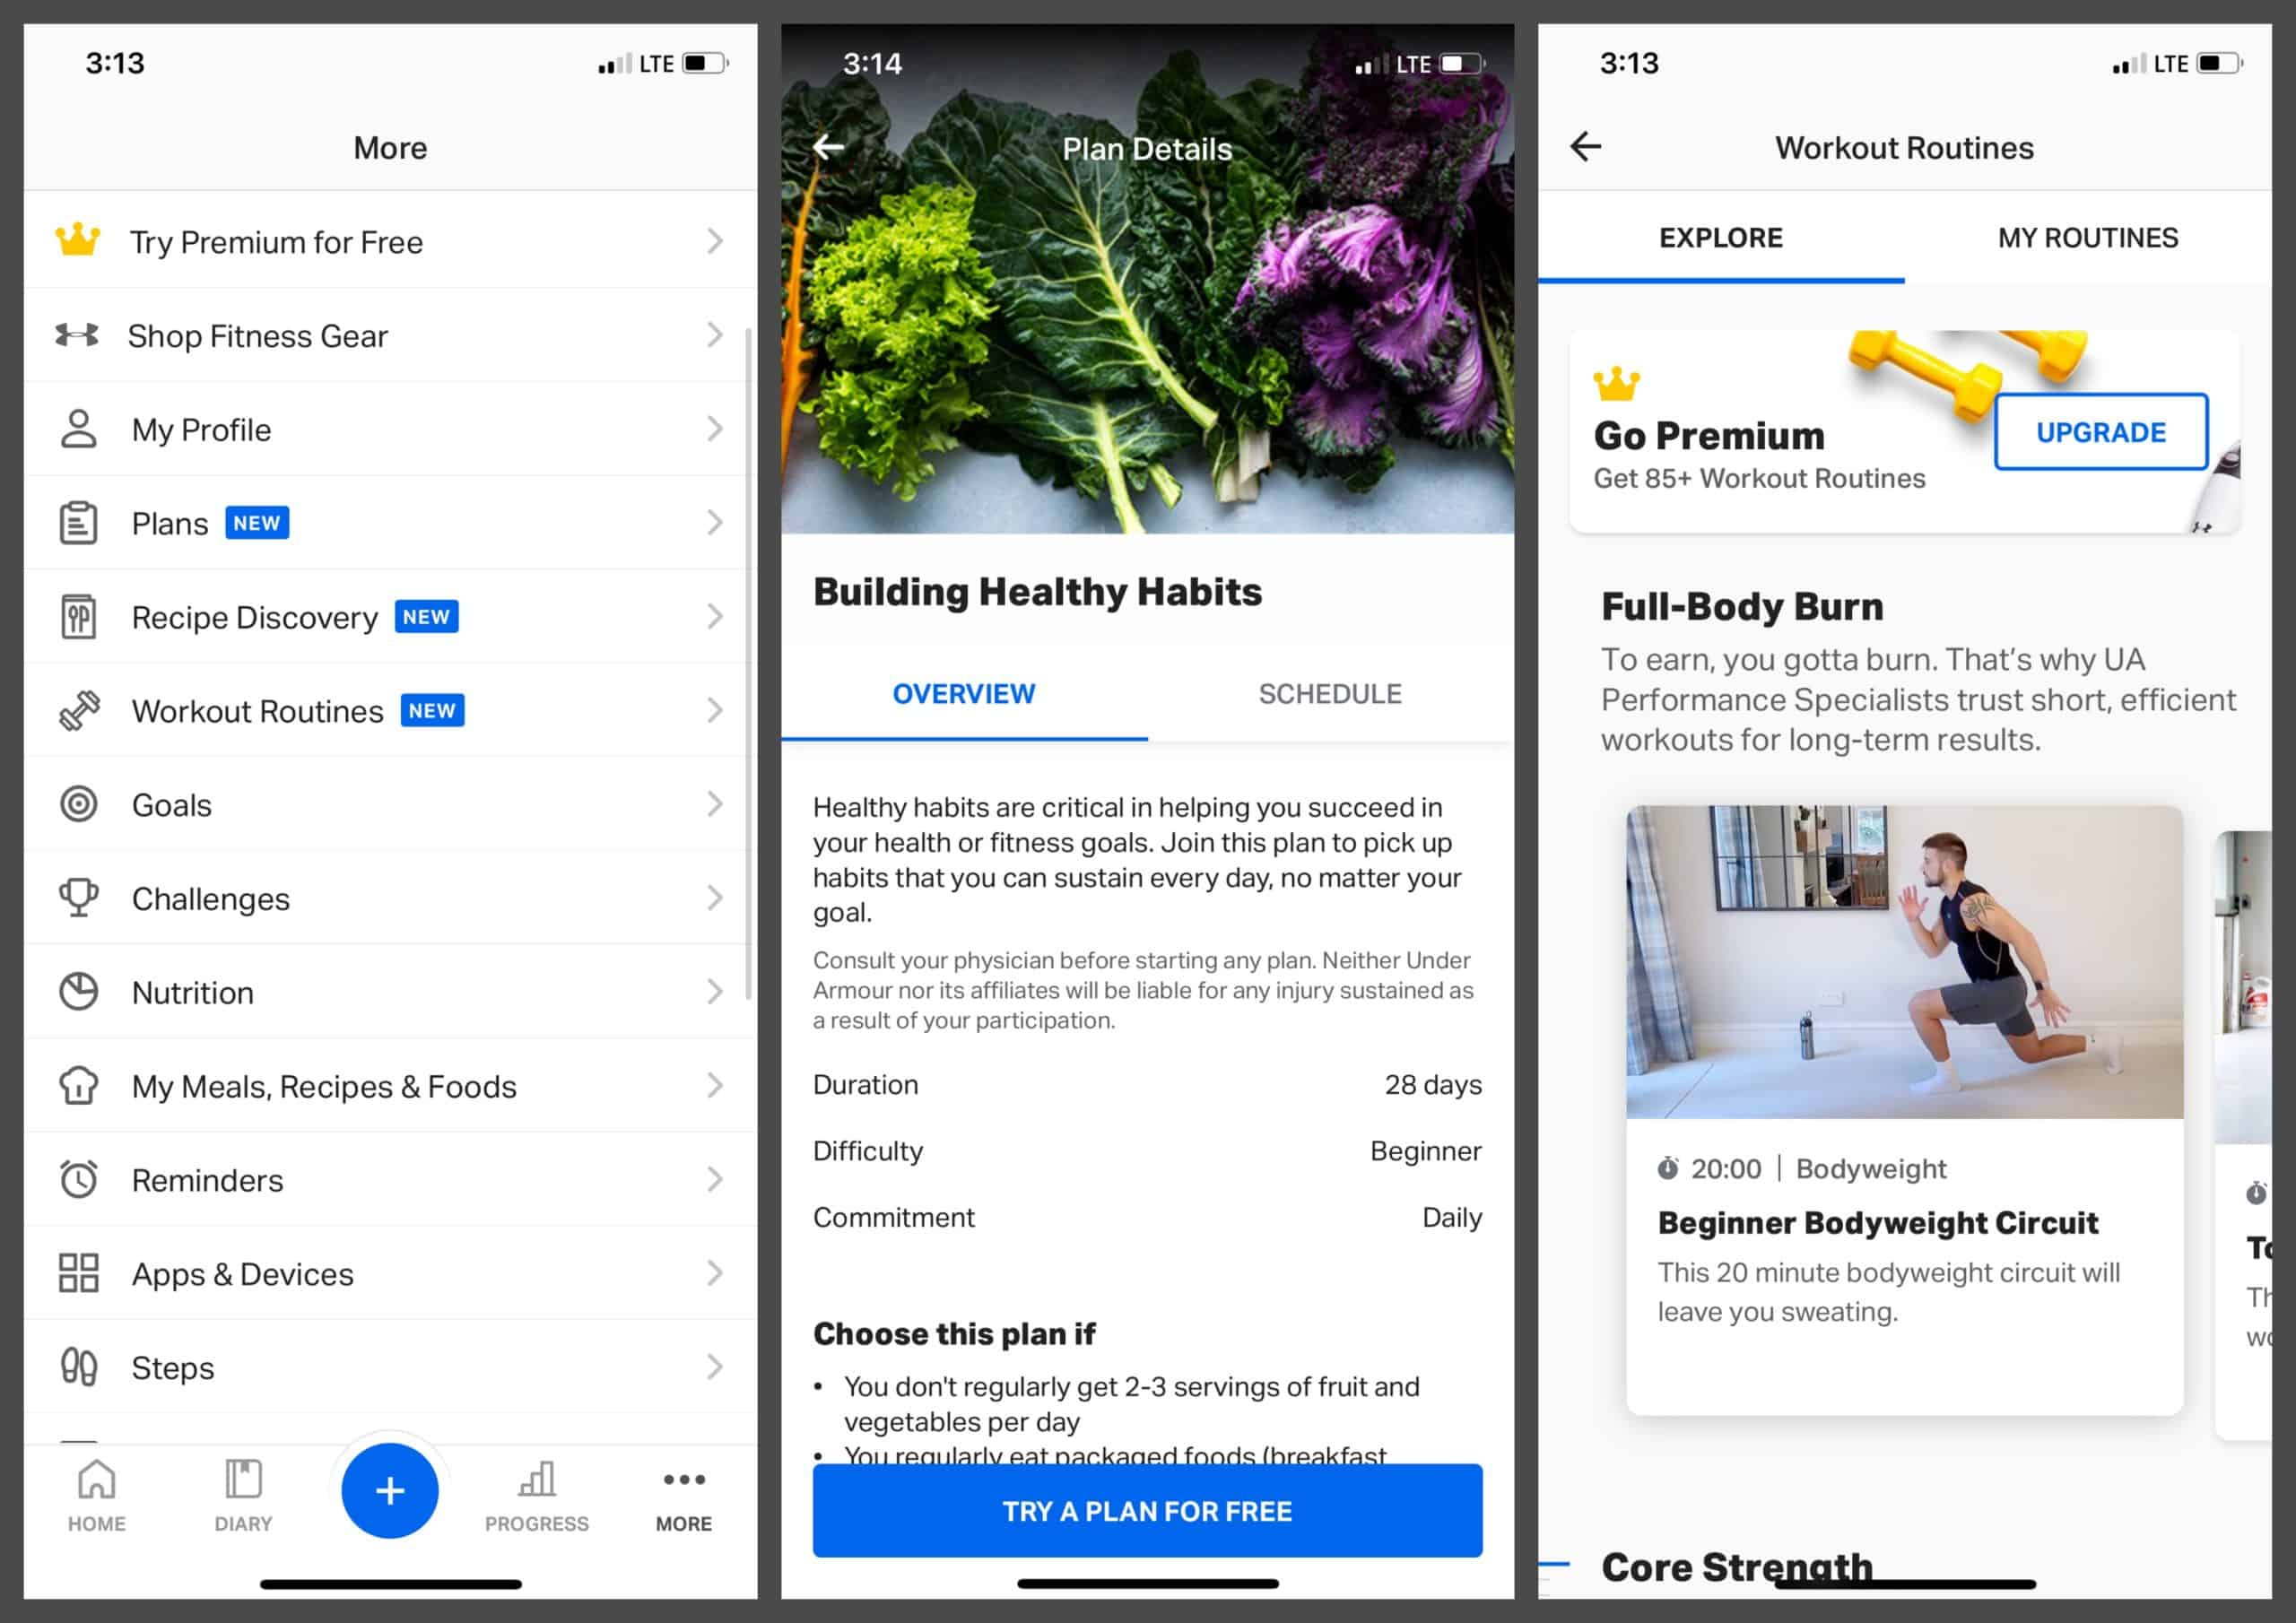 MyFitnessPal screenshots of plans and workout routines